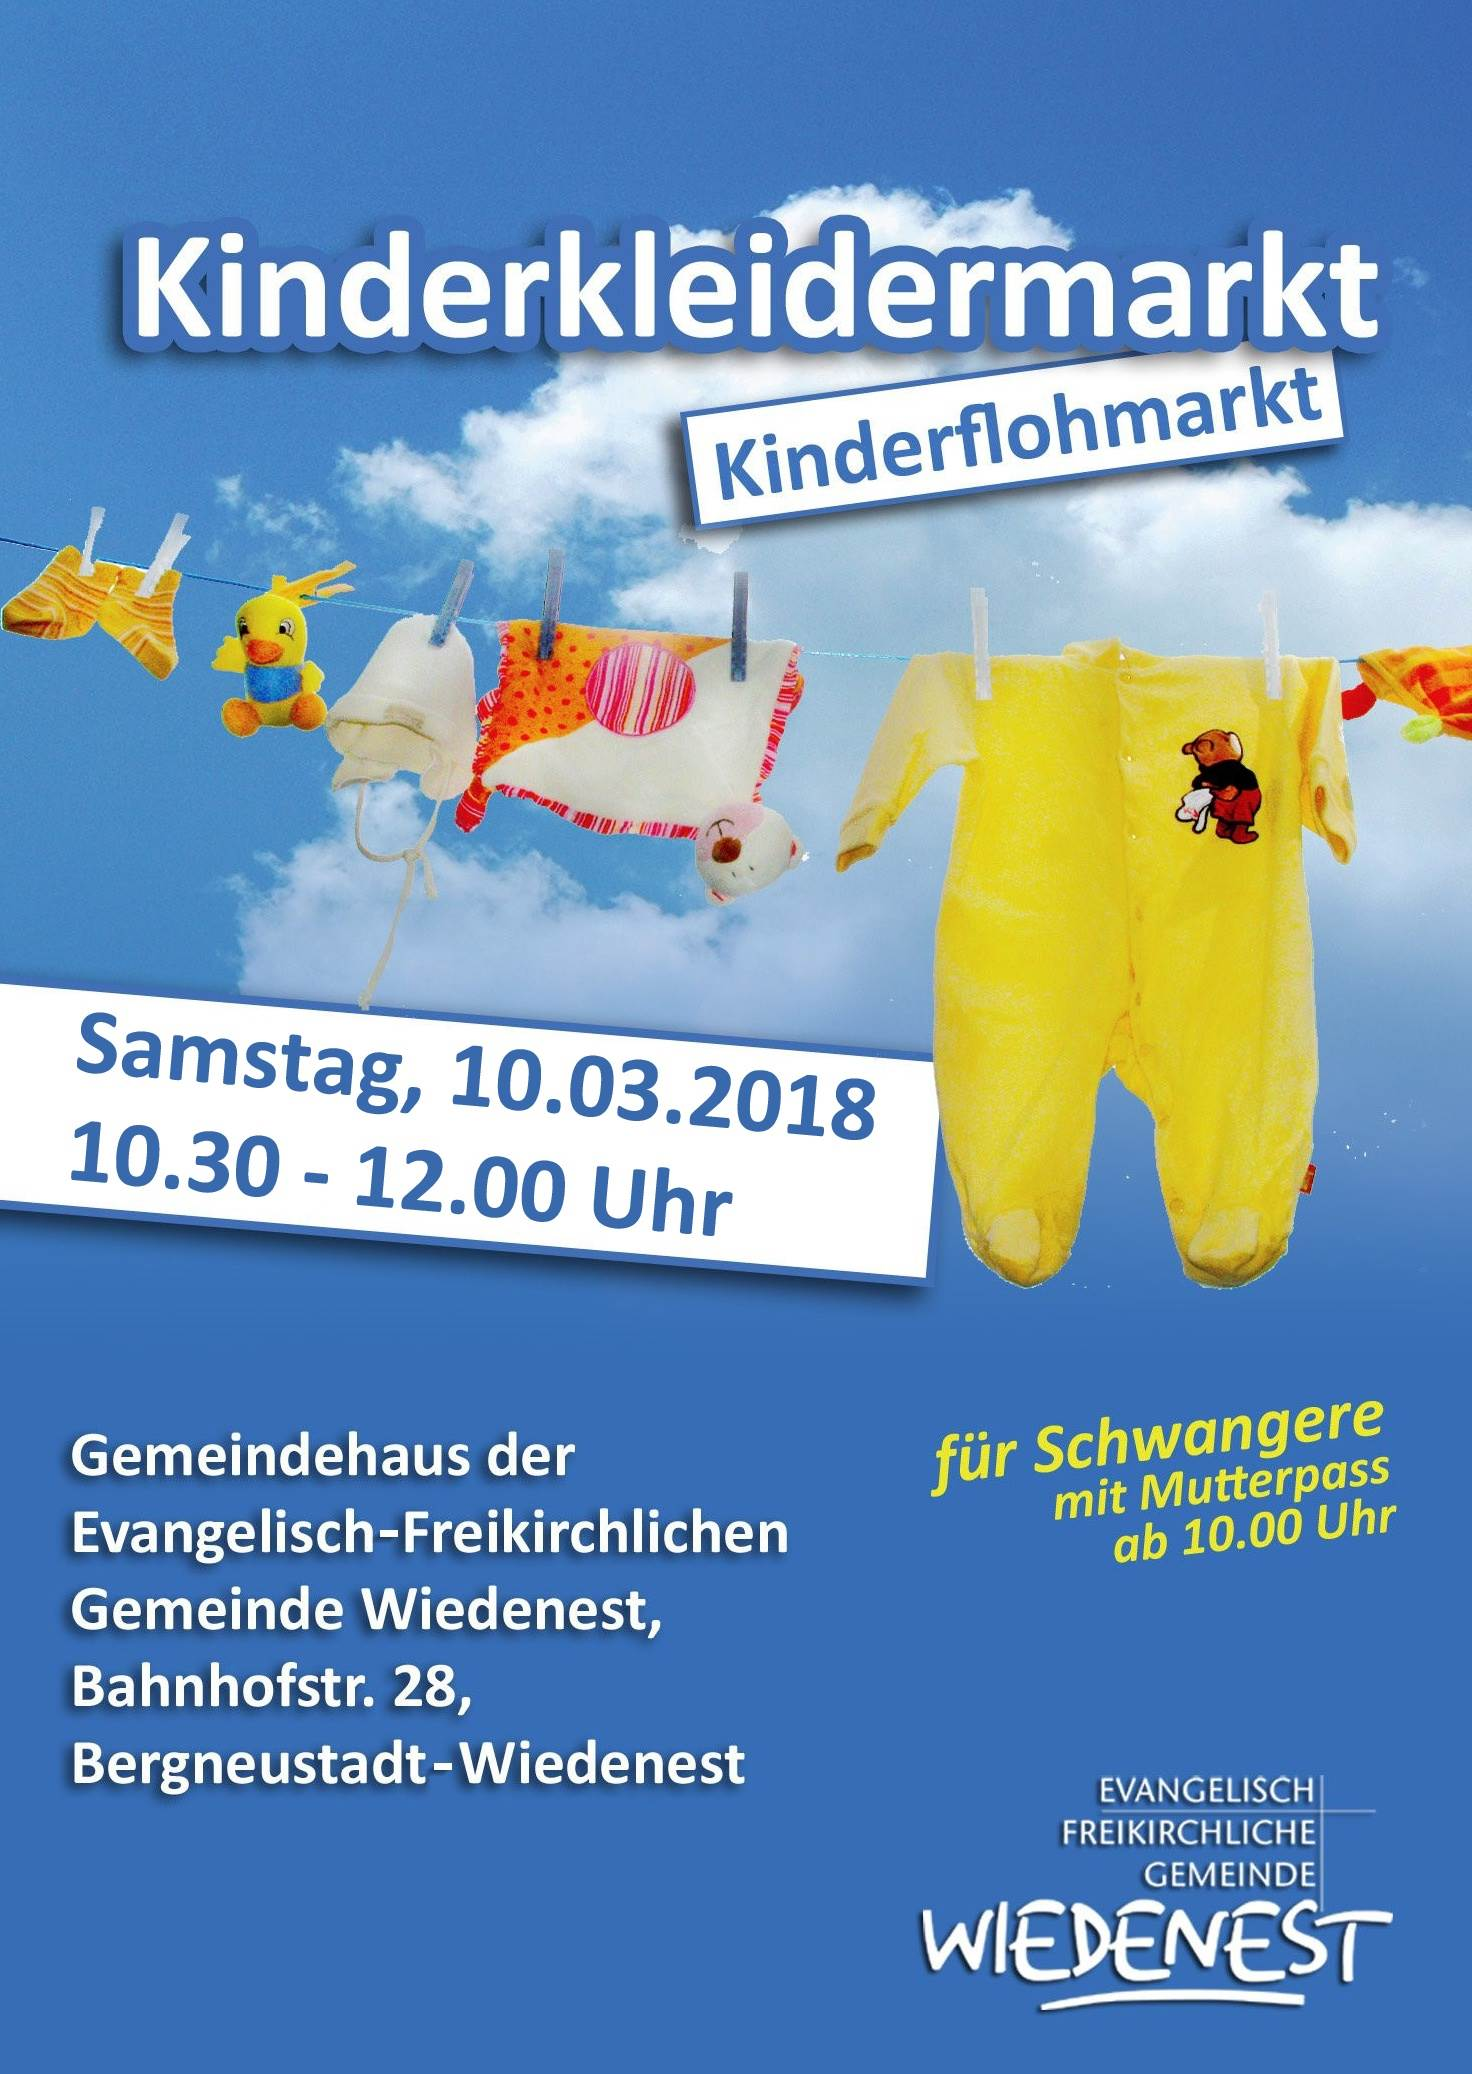 2018 03 10 Flyer Kinderkleidermarkt Screen 001